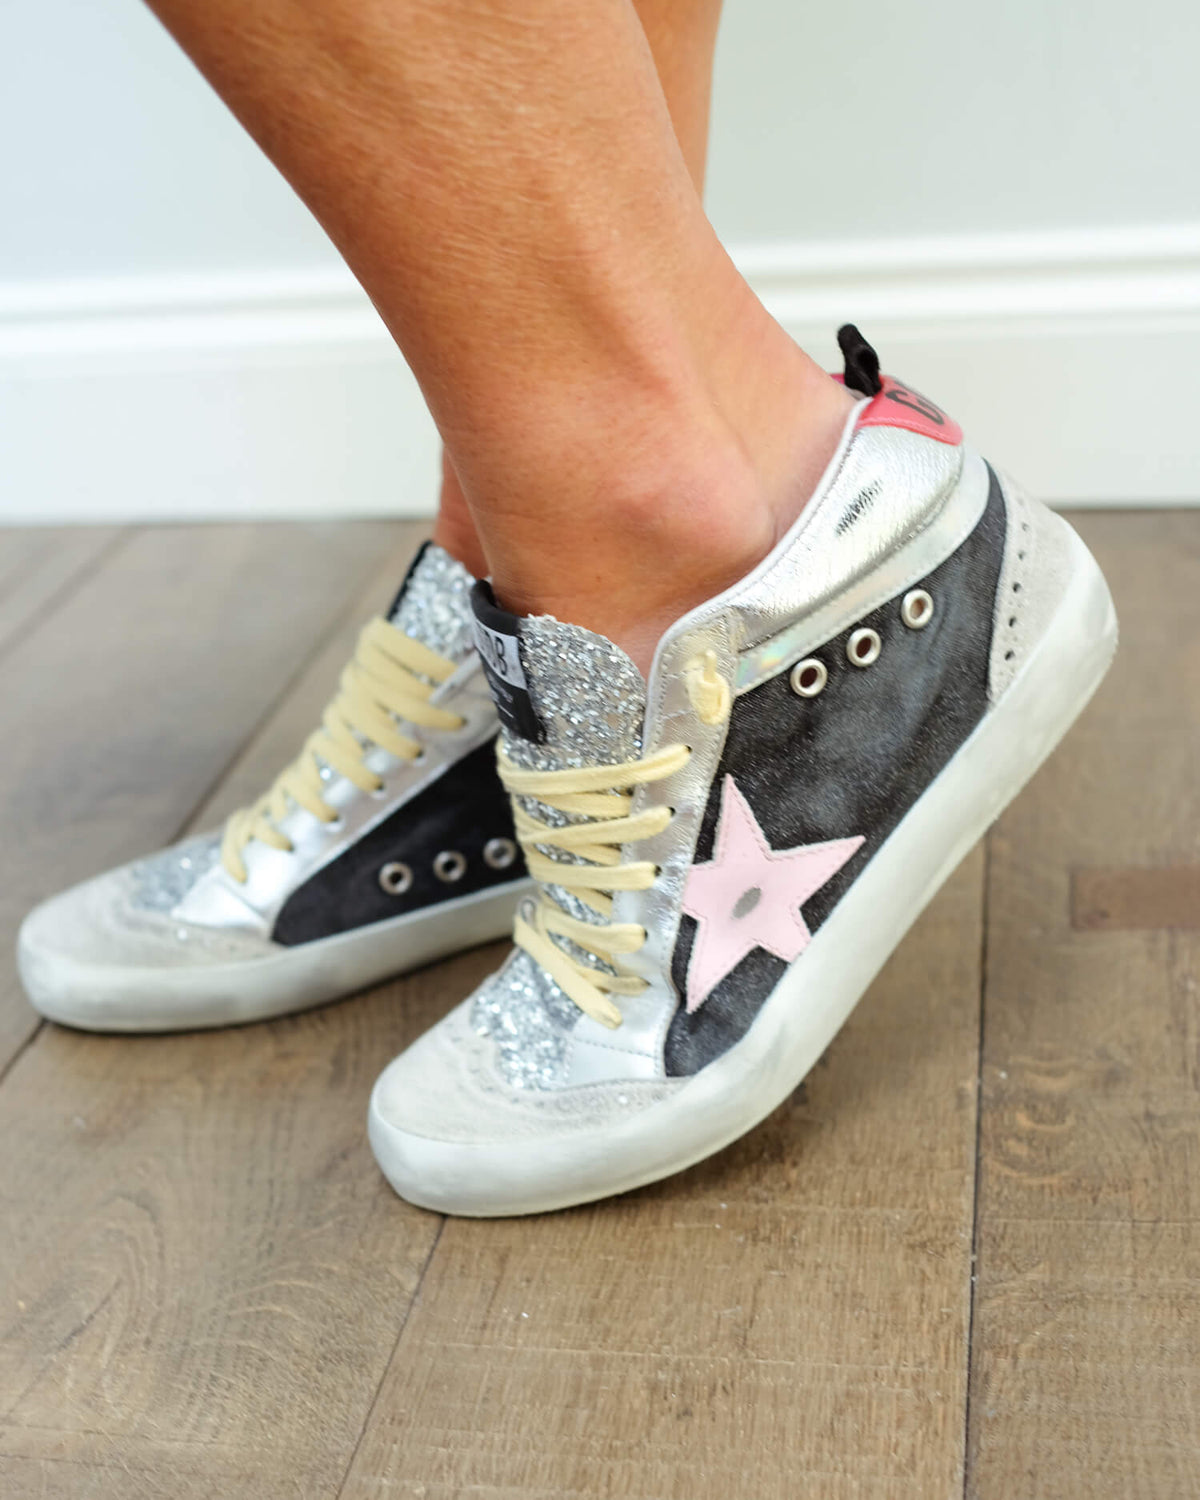 GG Mid star glitter 203 in black, silver, ice with pink star